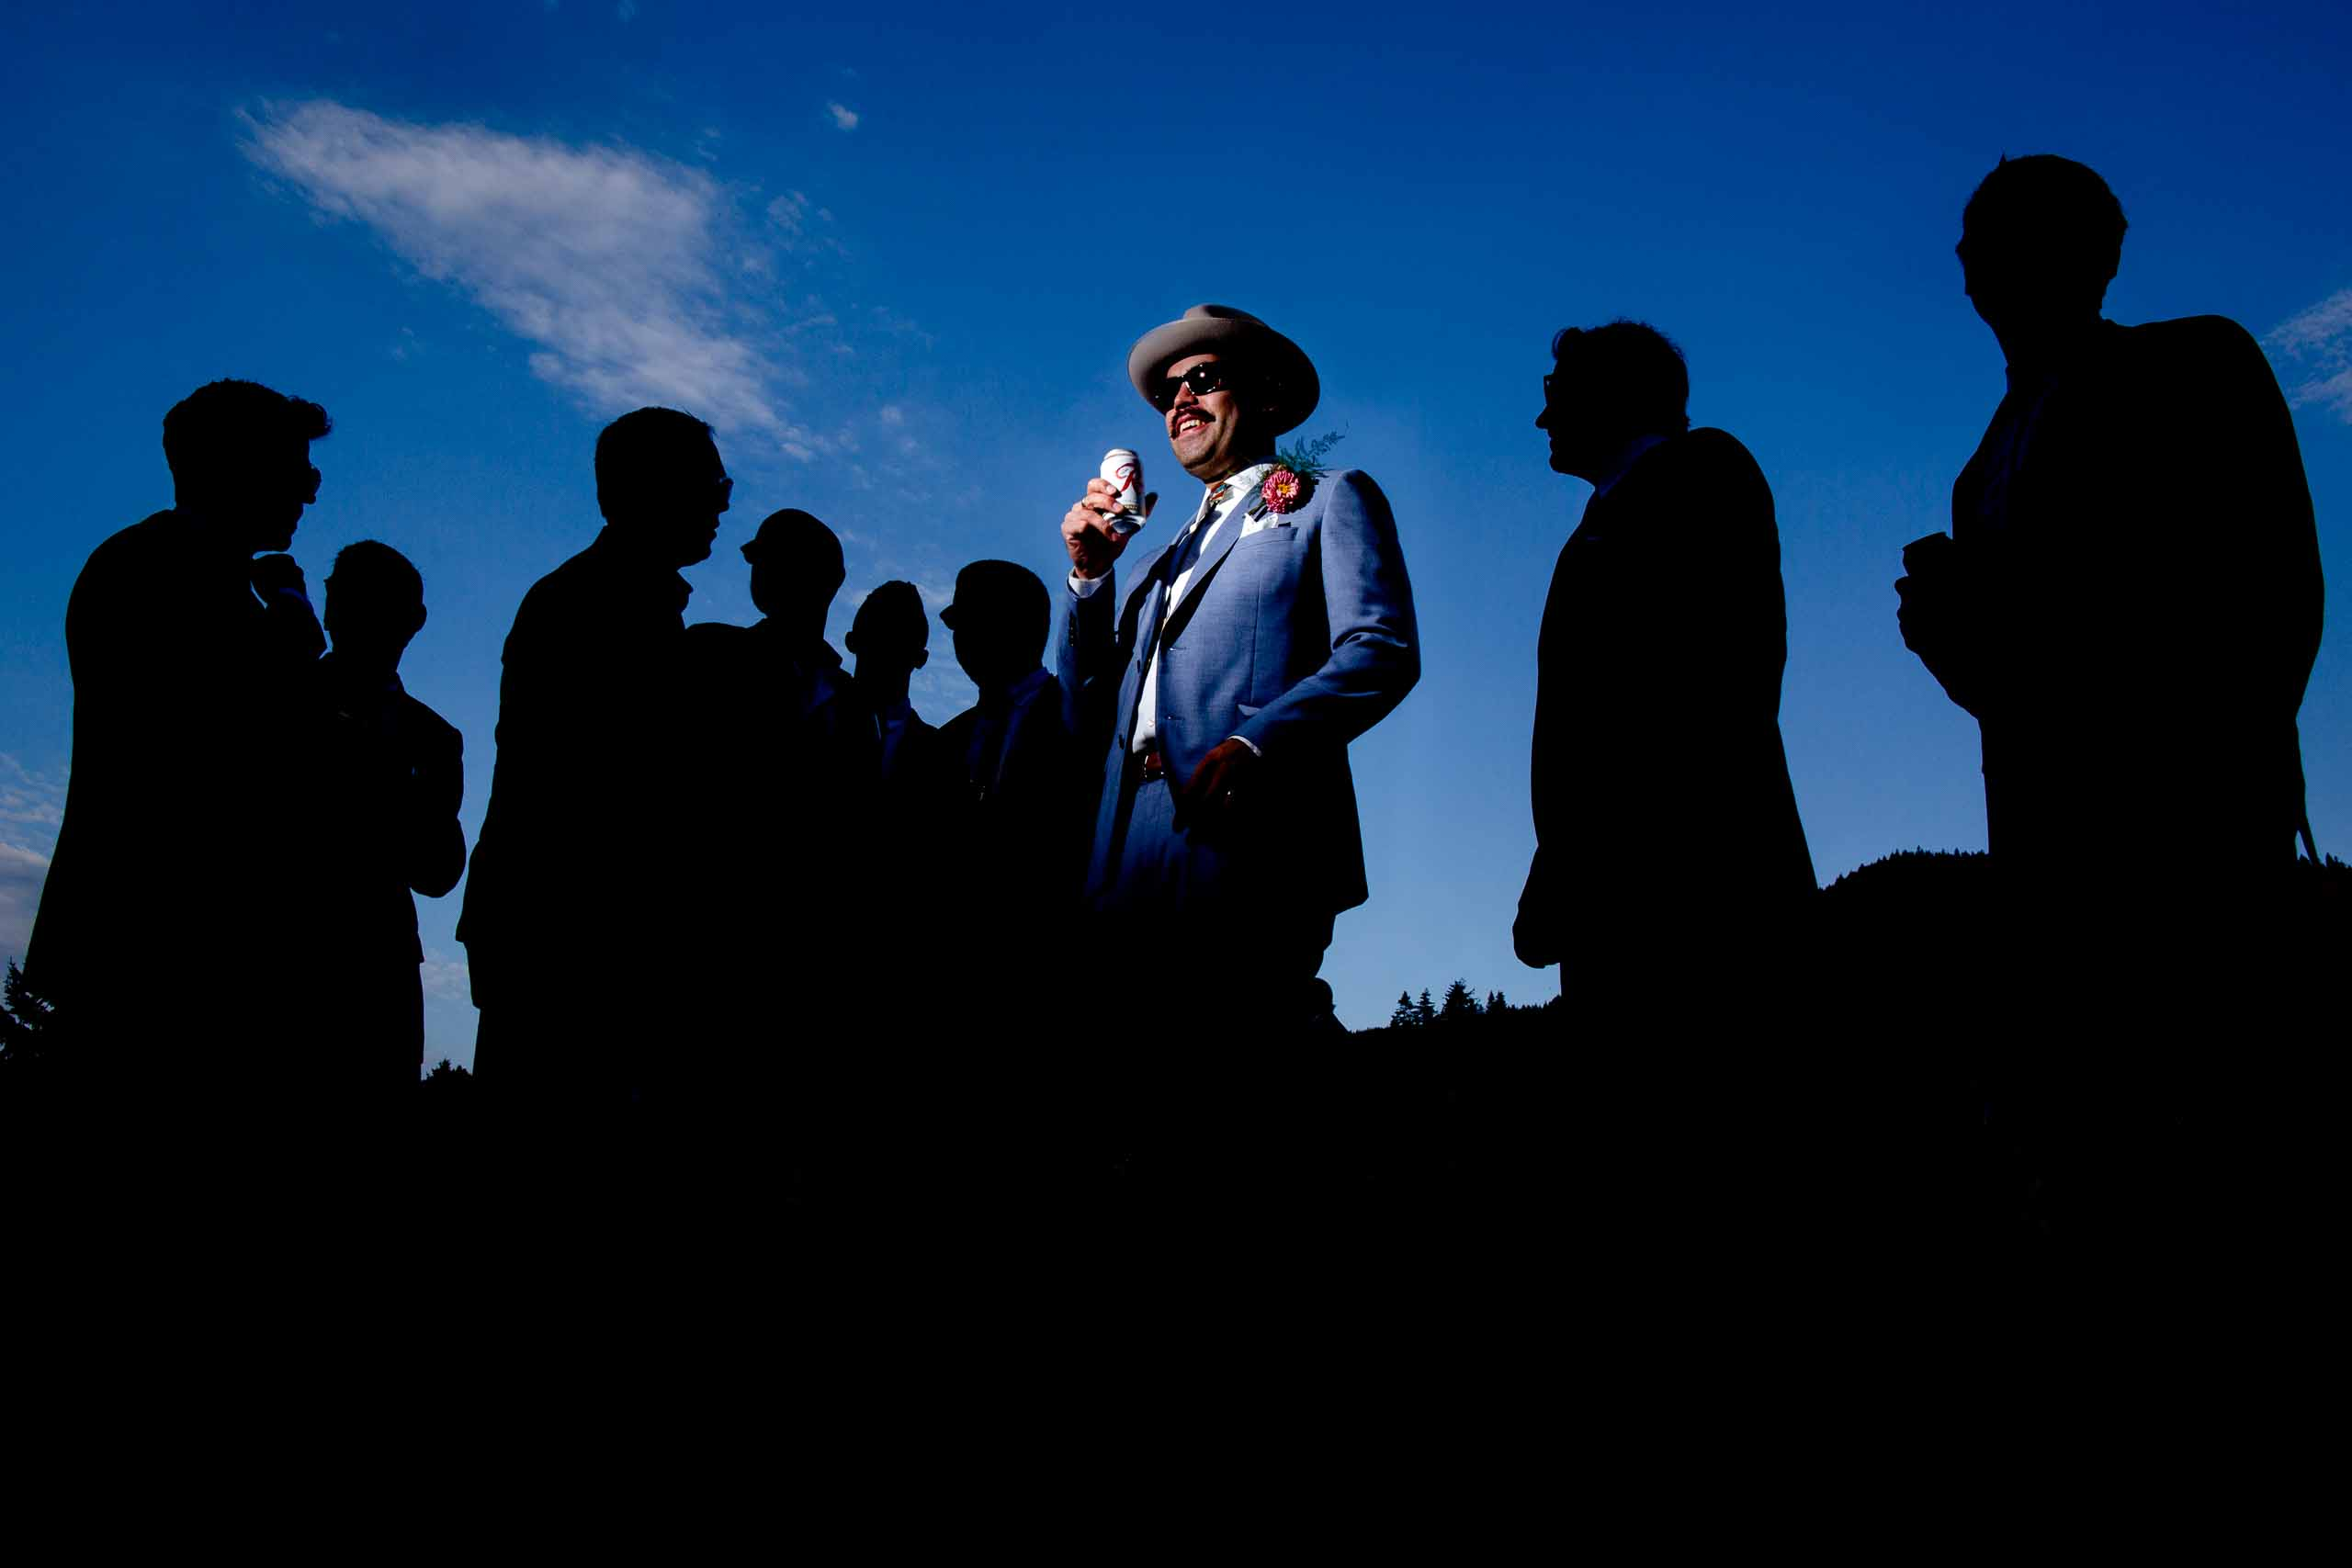 Epic photo of a groom lit up with his groomsmen silhouetted against the sky at the Mt Hood Organic Farms